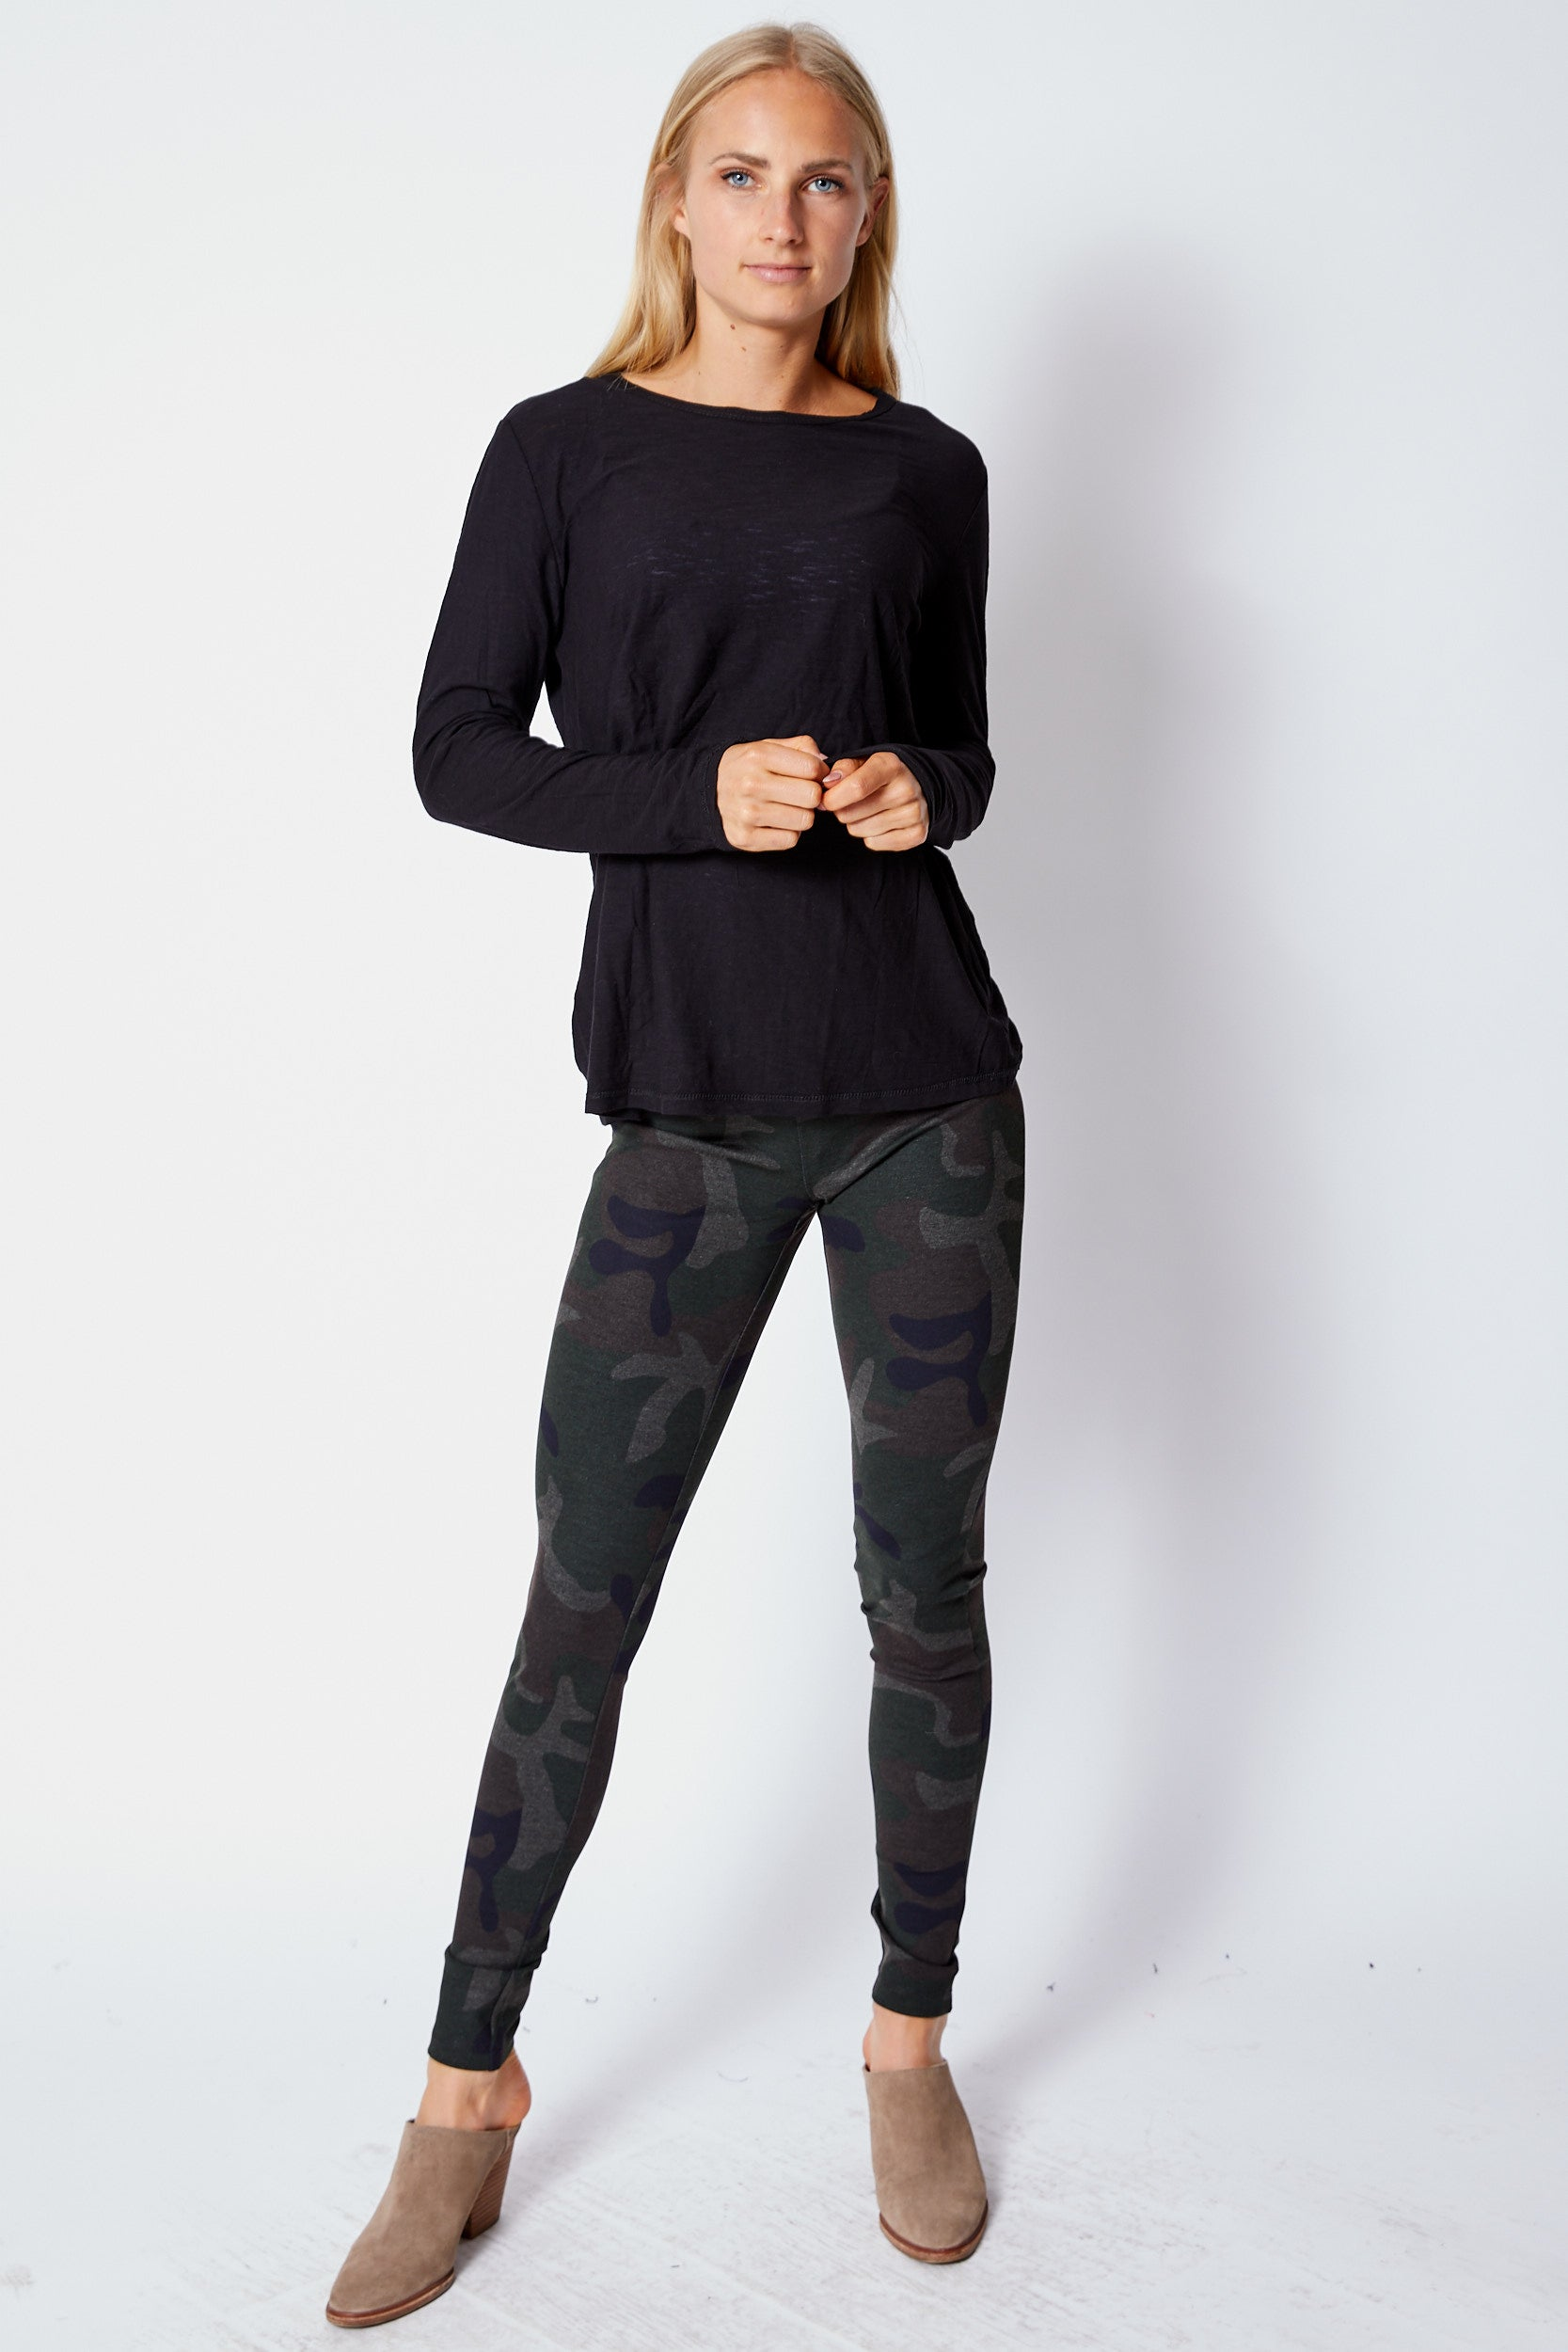 Camo Leggings - Jacqueline B Clothing